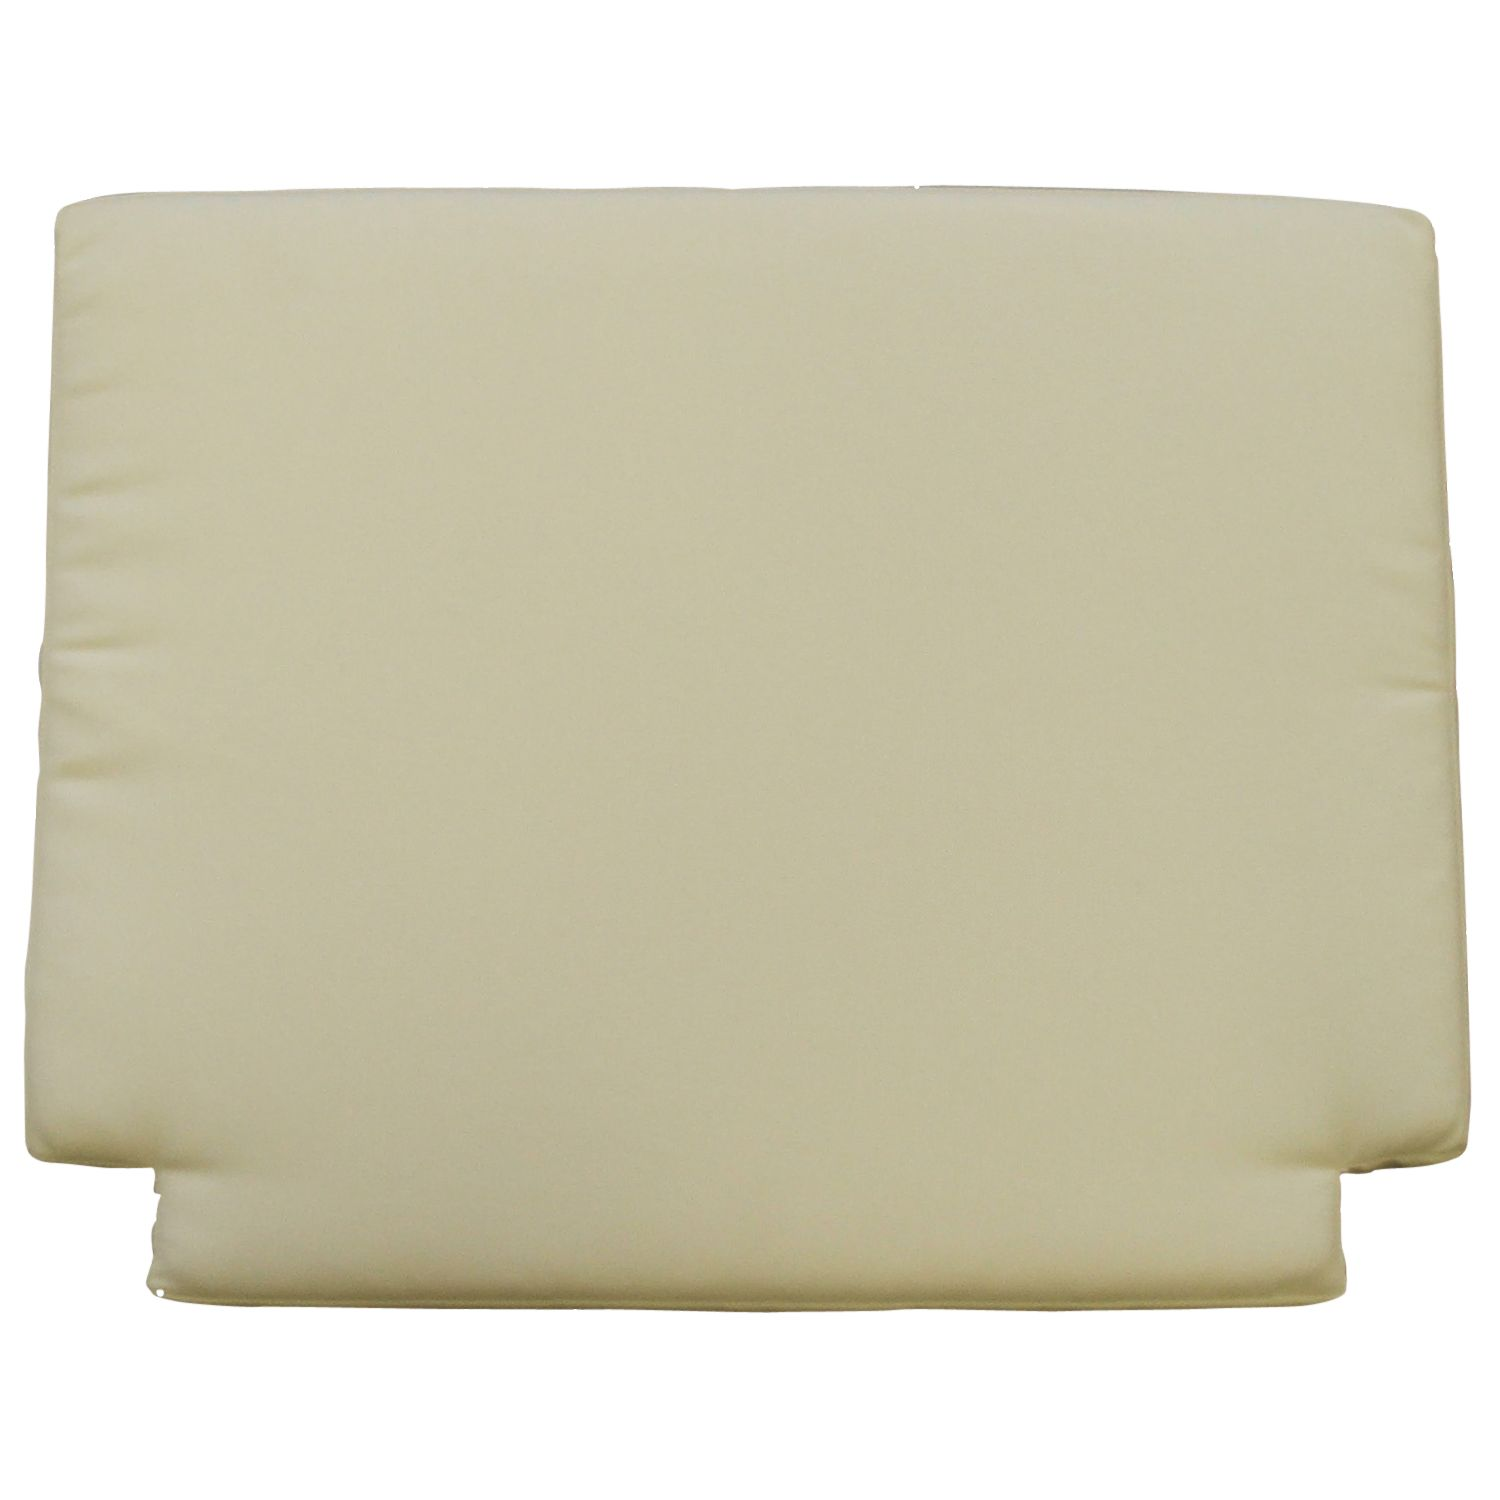 Barlow Tyrie Dining Chair Seat Cushion, White Sand